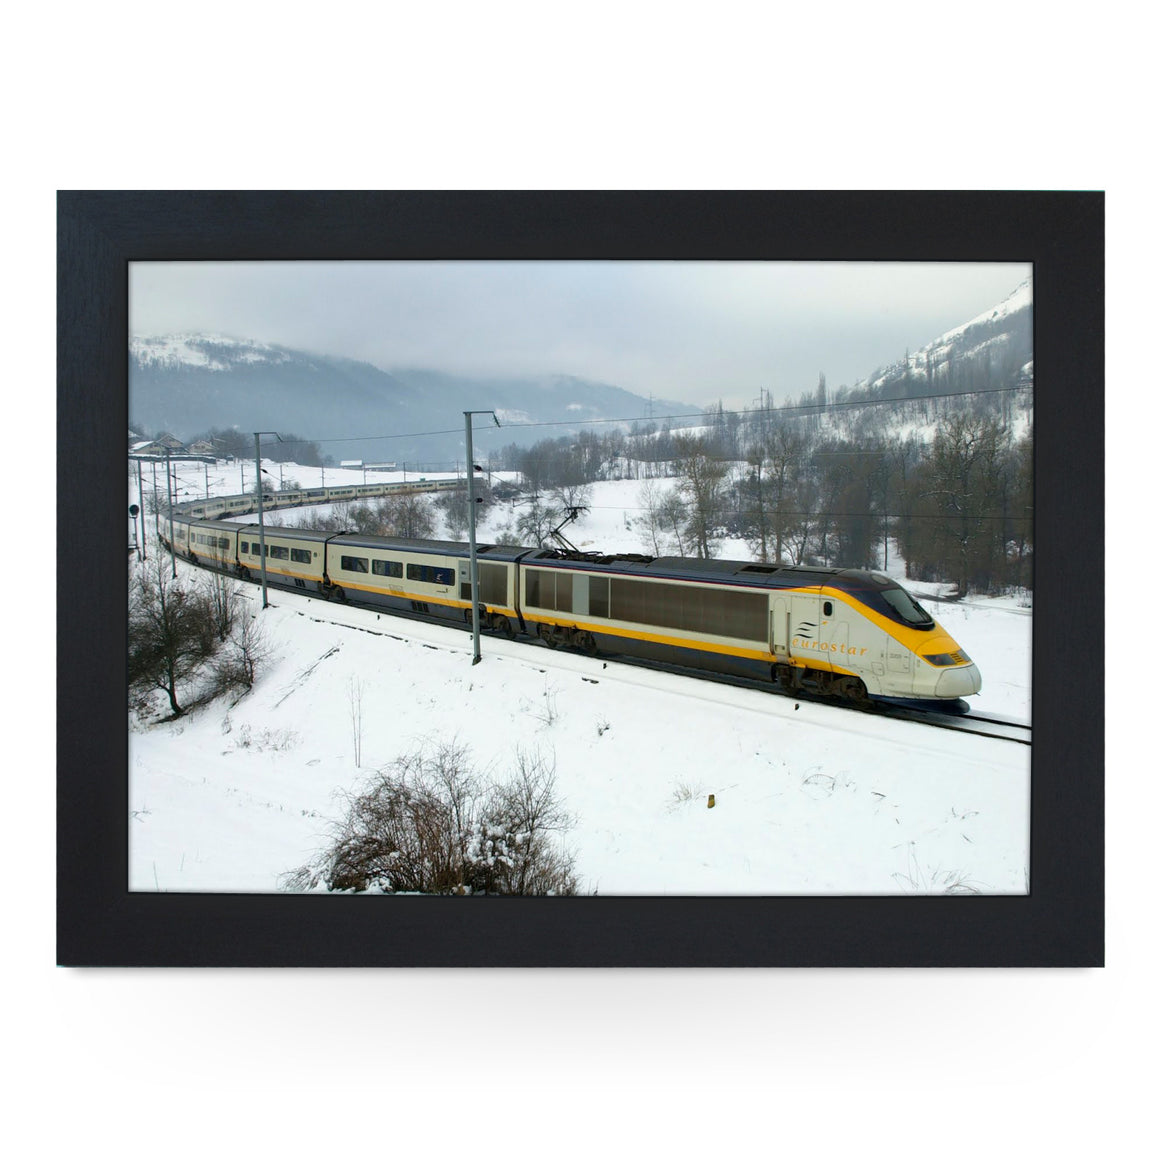 Eurostar Train Lap Tray - L0183